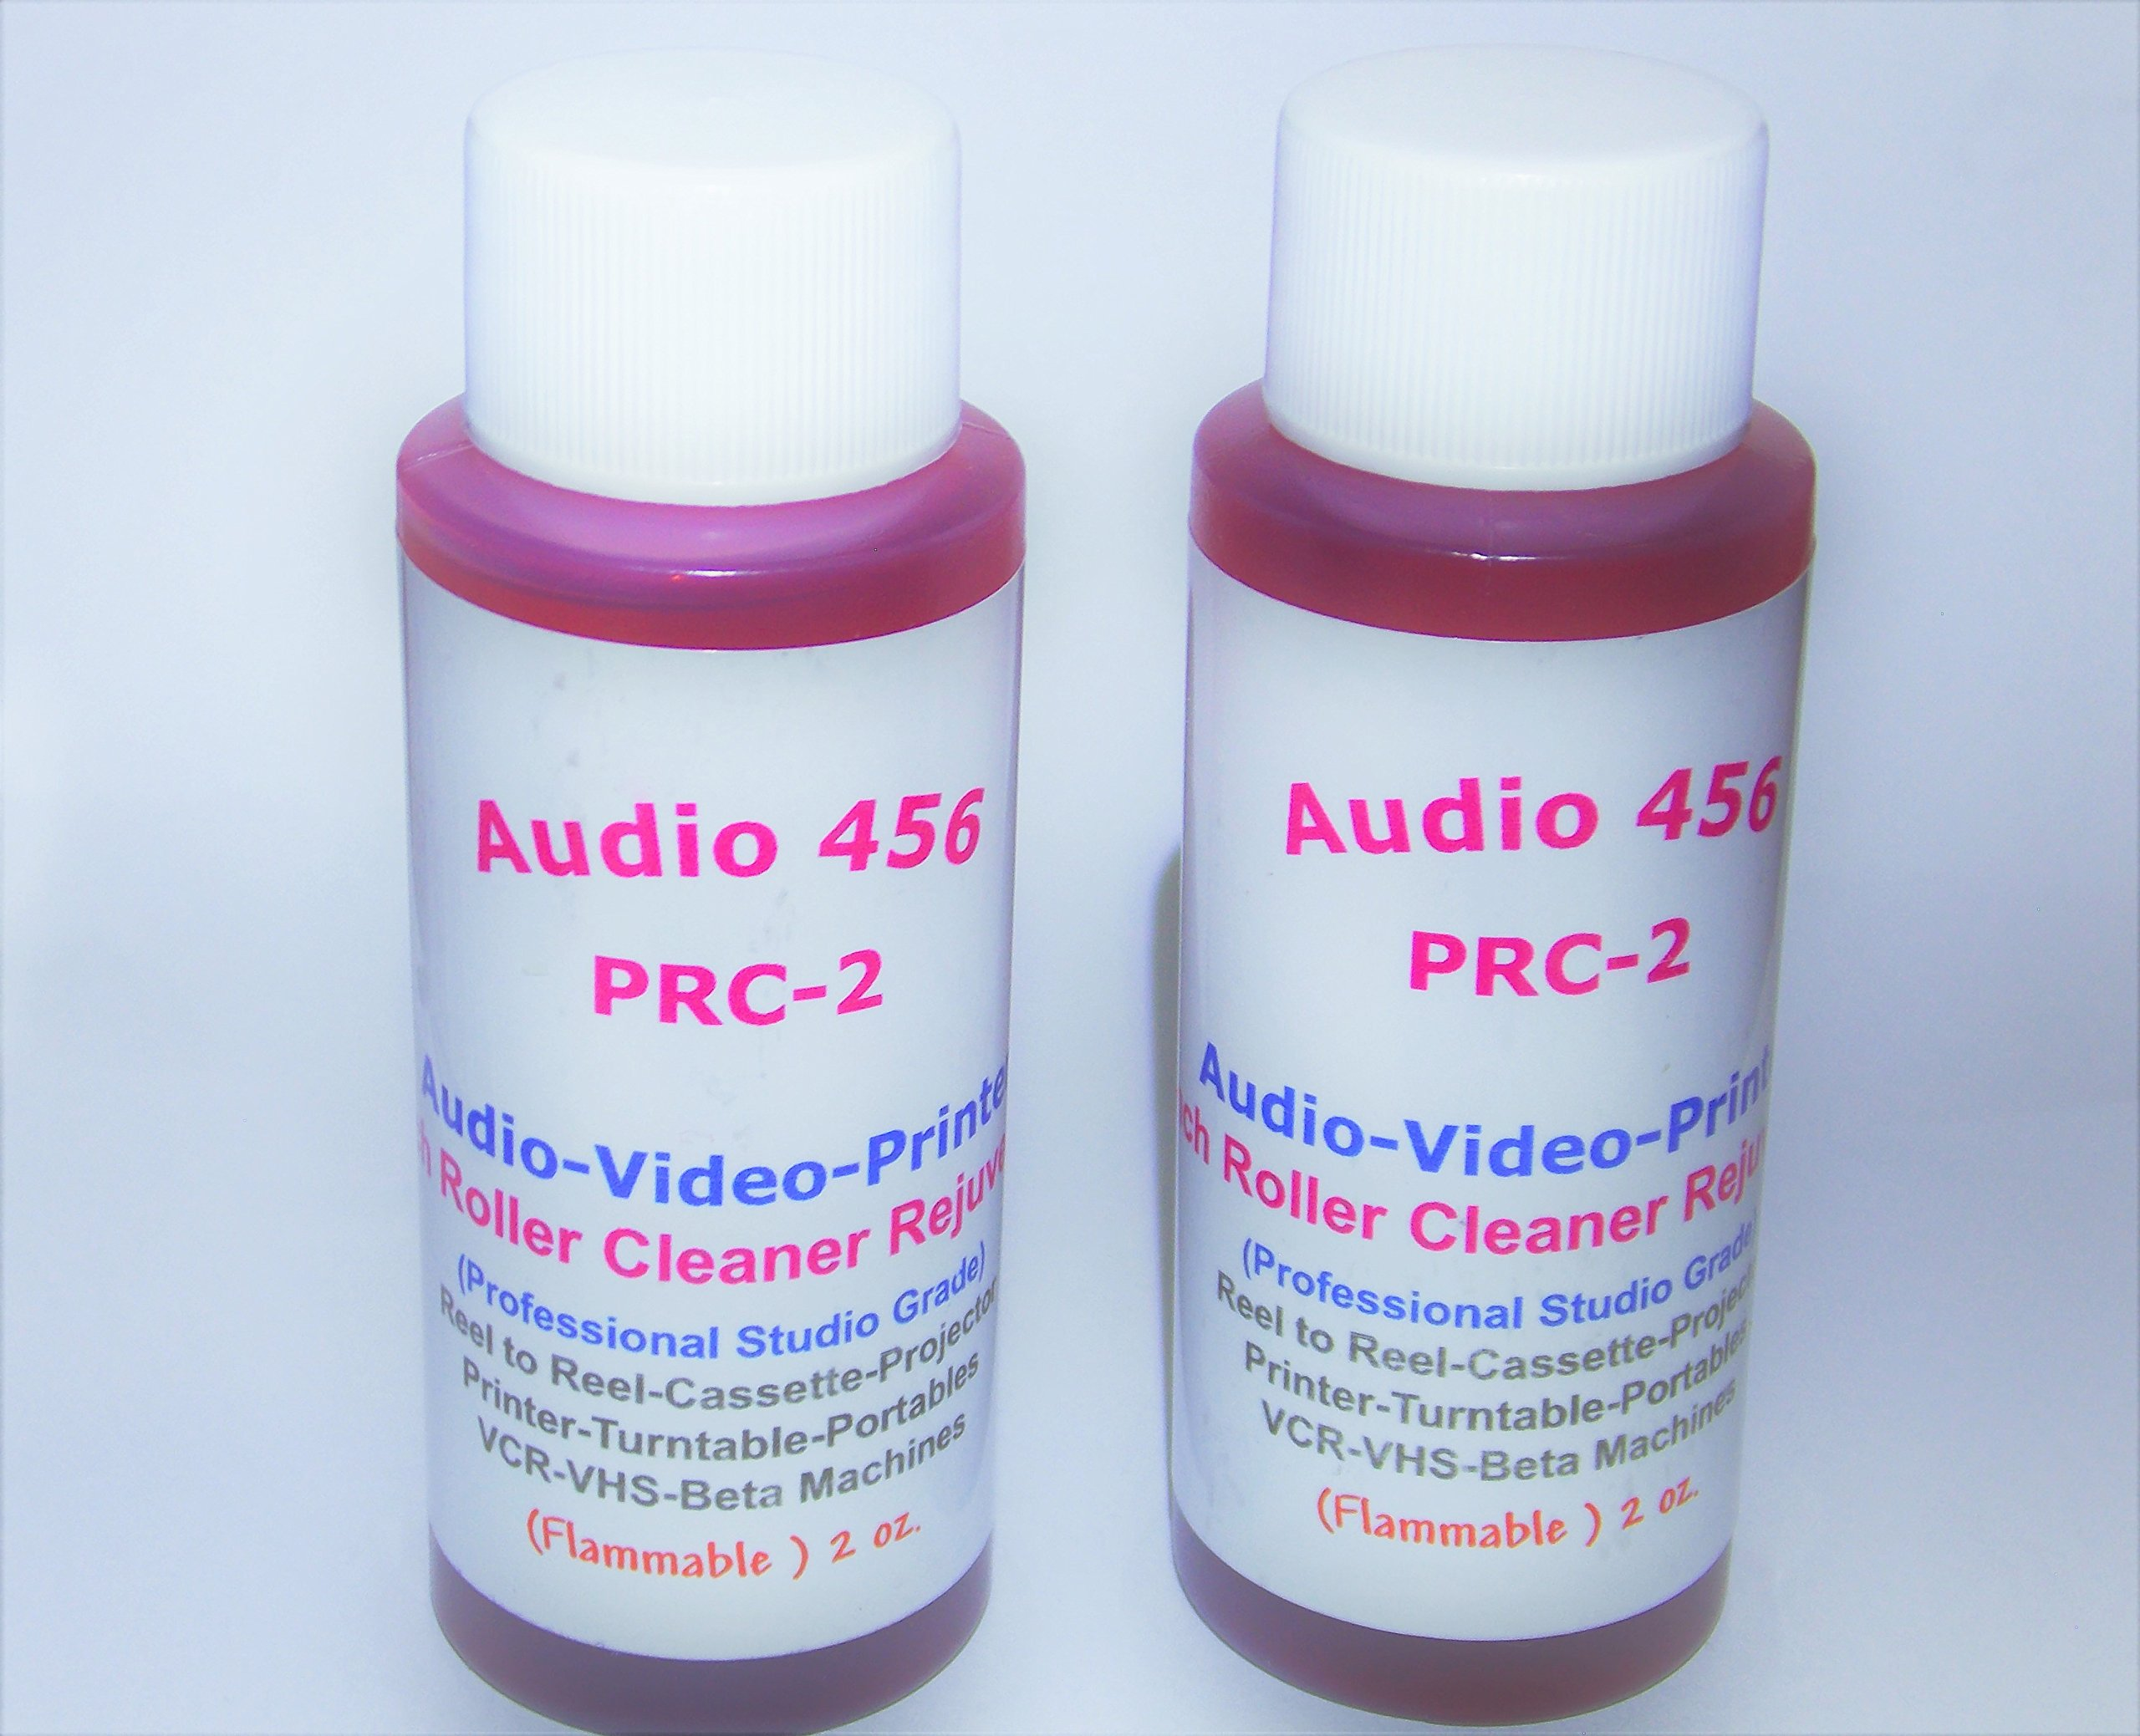 (2) Audio 456 (2 oz) PRC-2 Pinch Roller Cleaners Rejuvenators Conditioners Audio/Video Reel to Reel+Cassette Tape Deck+VCR/Beta Machine+Tape Echo+Printer+Projector+